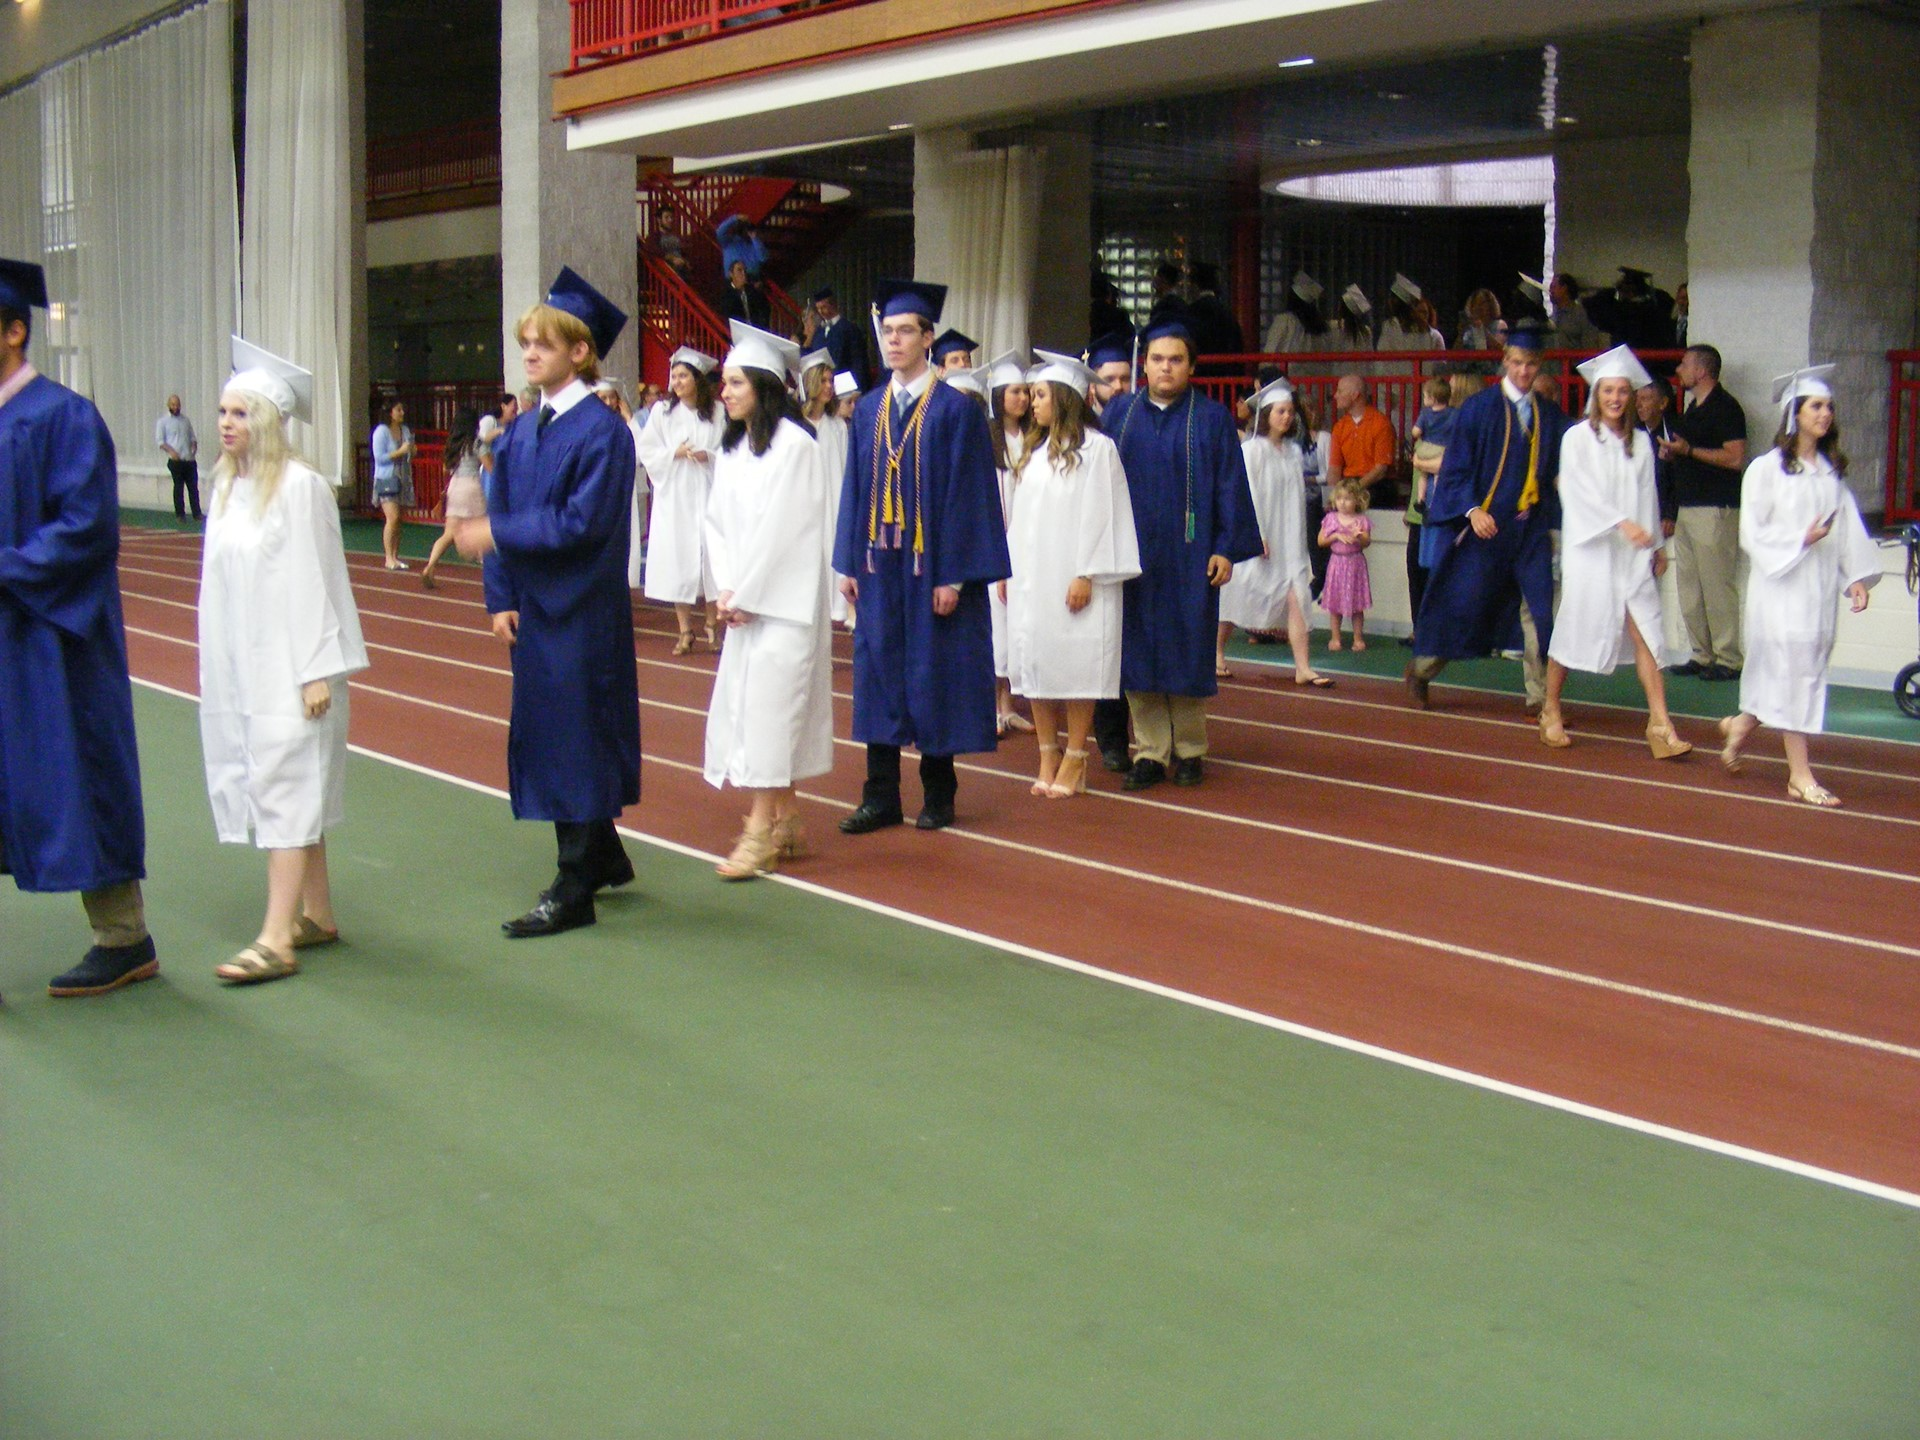 Class of 2017 Graduation - Procession